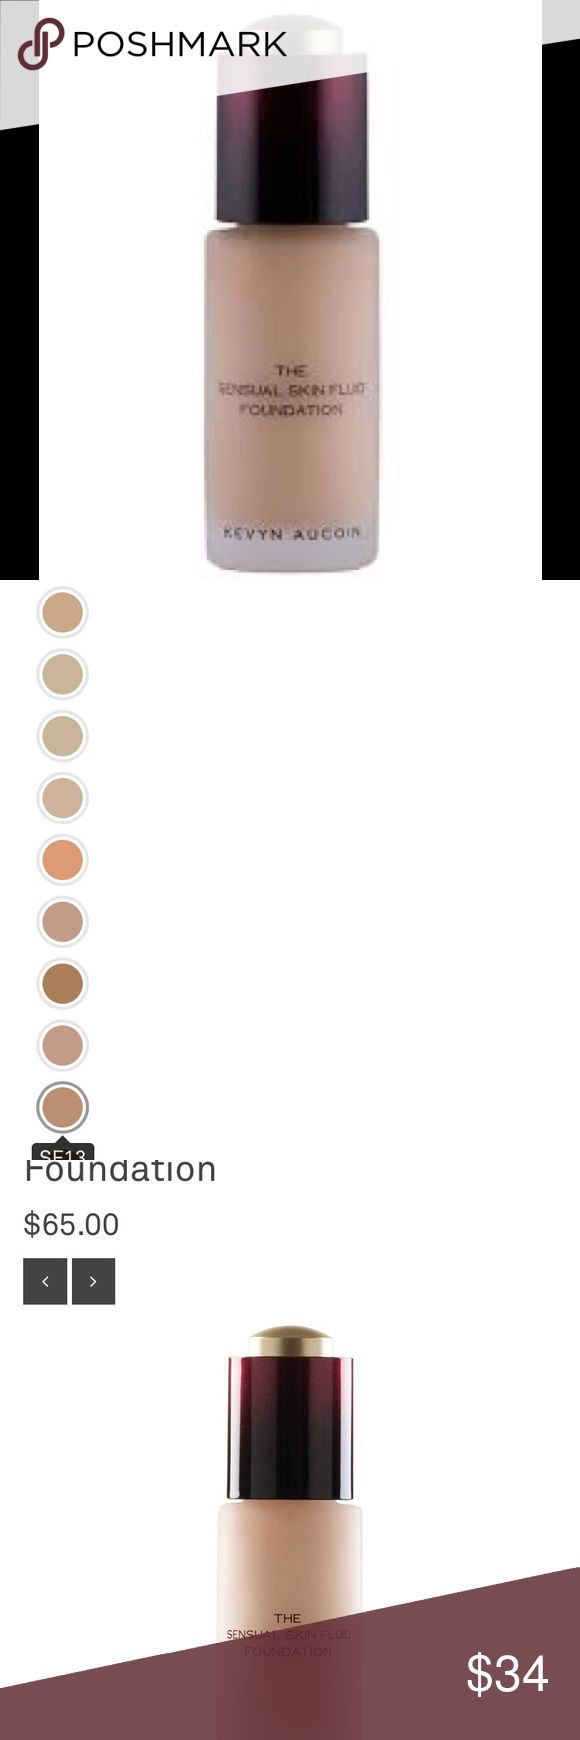 The 25 best foundation colors ideas on pinterest foundation kevyn aucoin thesensual skin fluid foundation sf13 nvjuhfo Choice Image